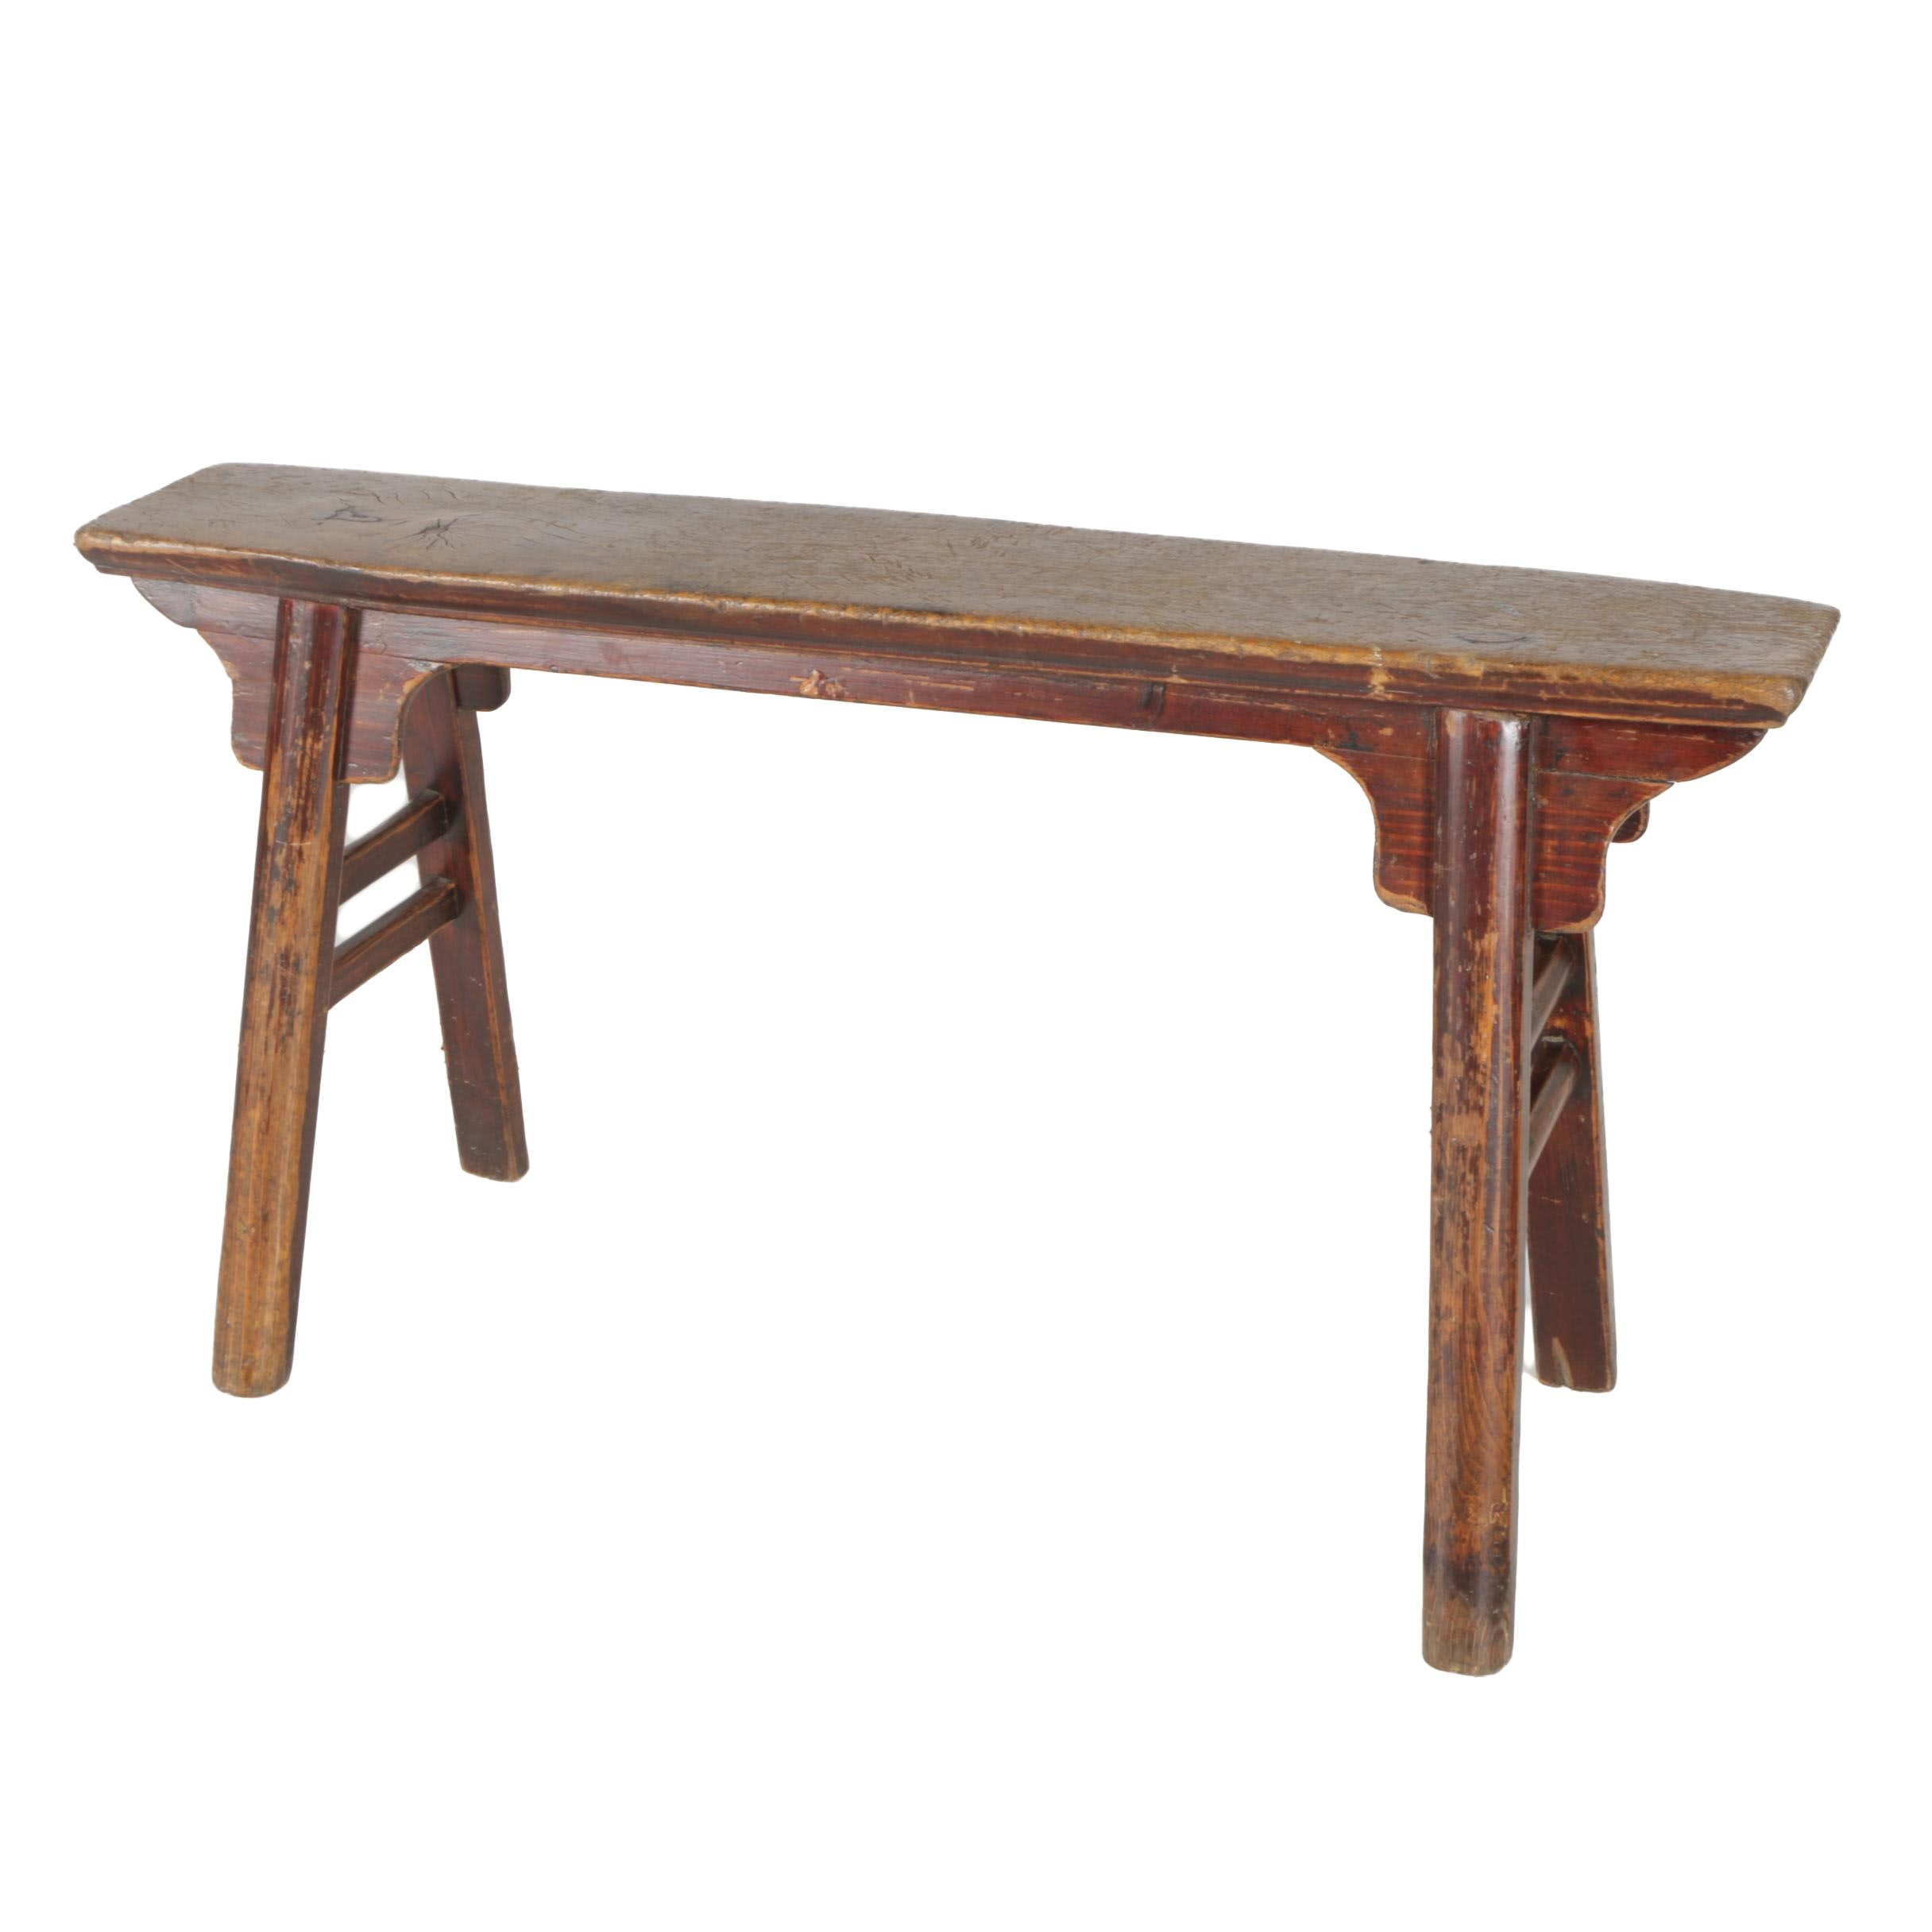 Chinese Provincial Style Bench With Splayed Legs